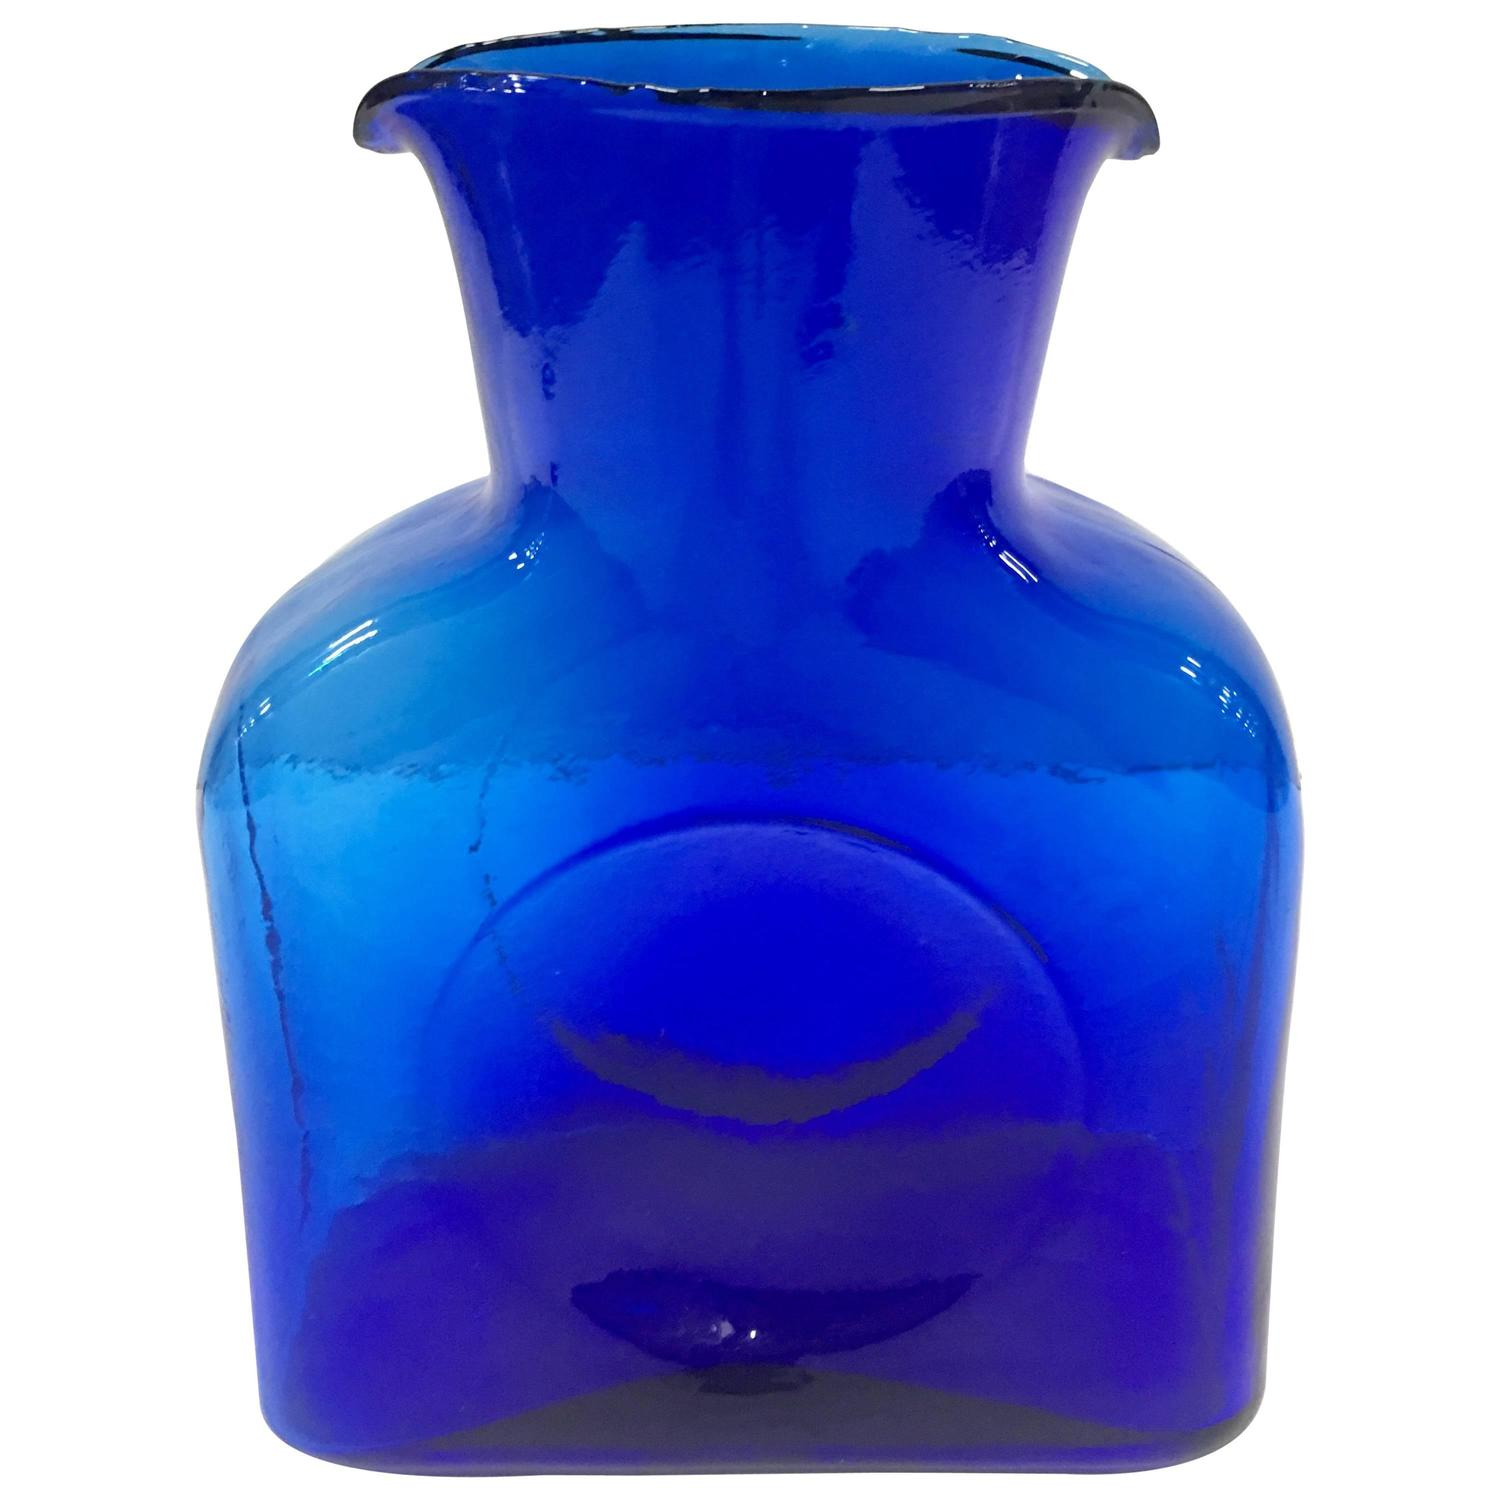 Vintage blenko glass cobalt double spout pitcher for sale at 1stdibs reviewsmspy